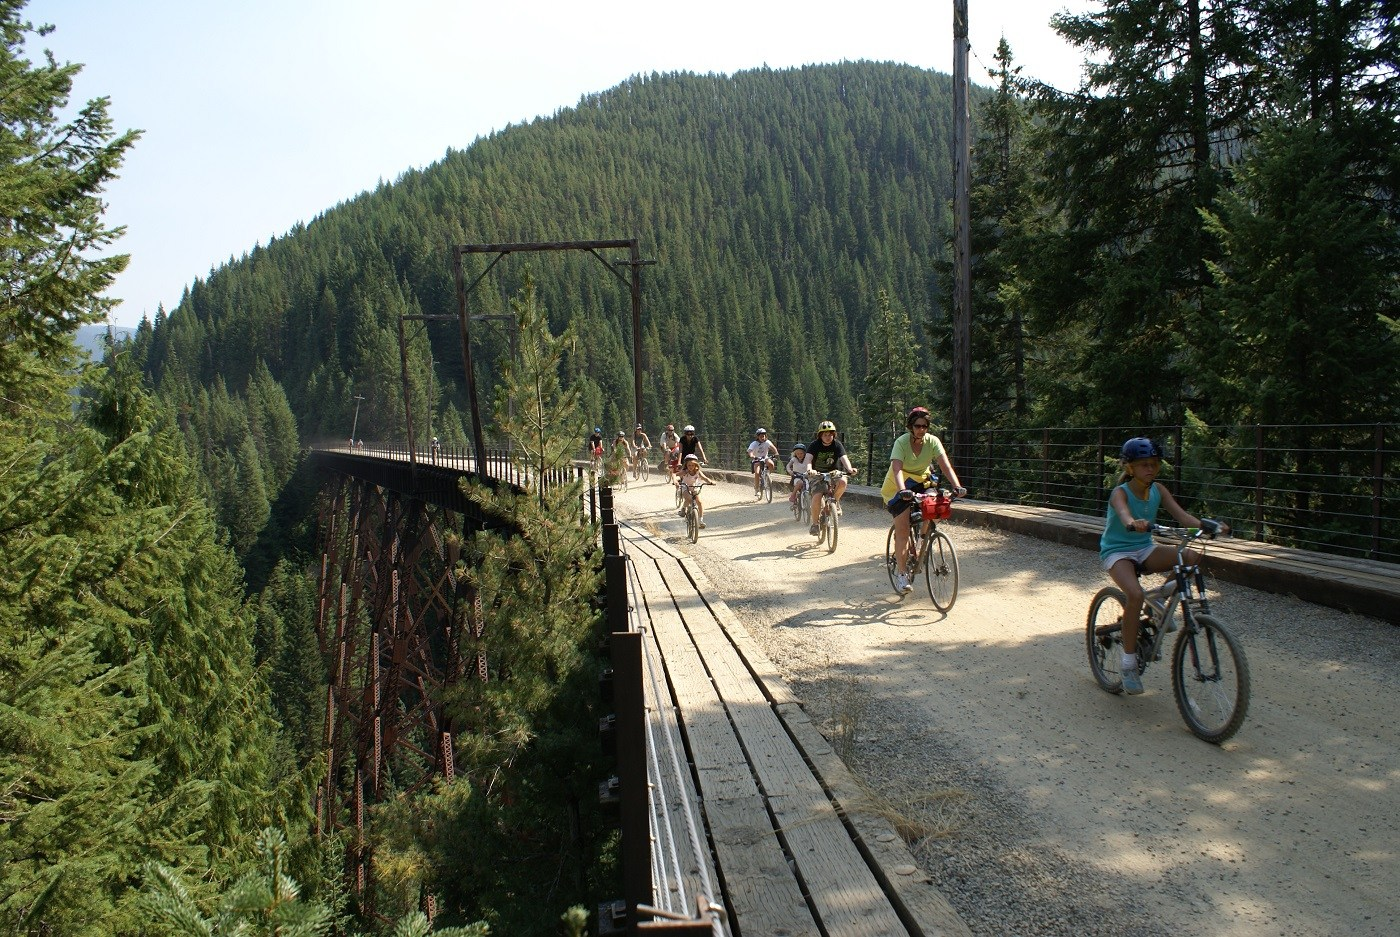 Wallace Idaho Hiawatha Best Ski Towns To Visit In The Summer